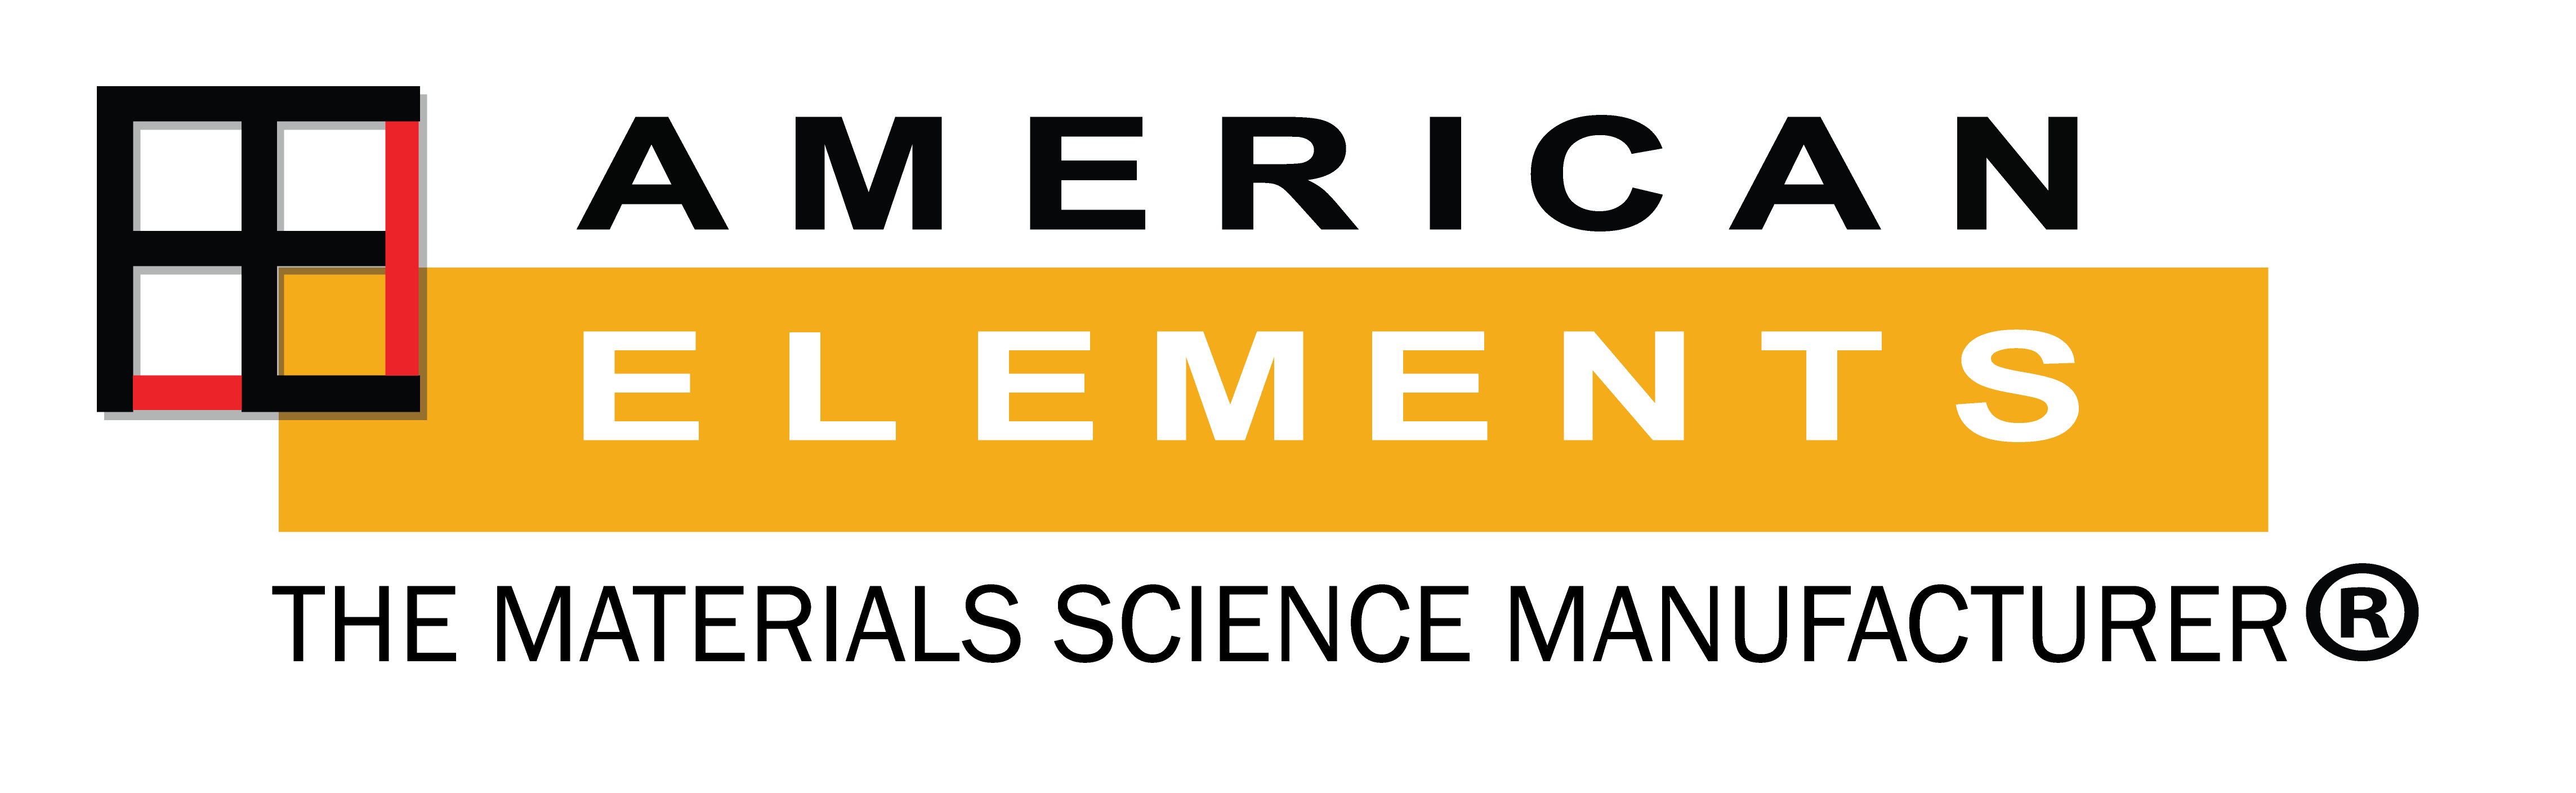 American Elements, global manufacturer of advanced electromagnetic, optoelectronic, & nanophotonic materials for fabrication of metamaterials.